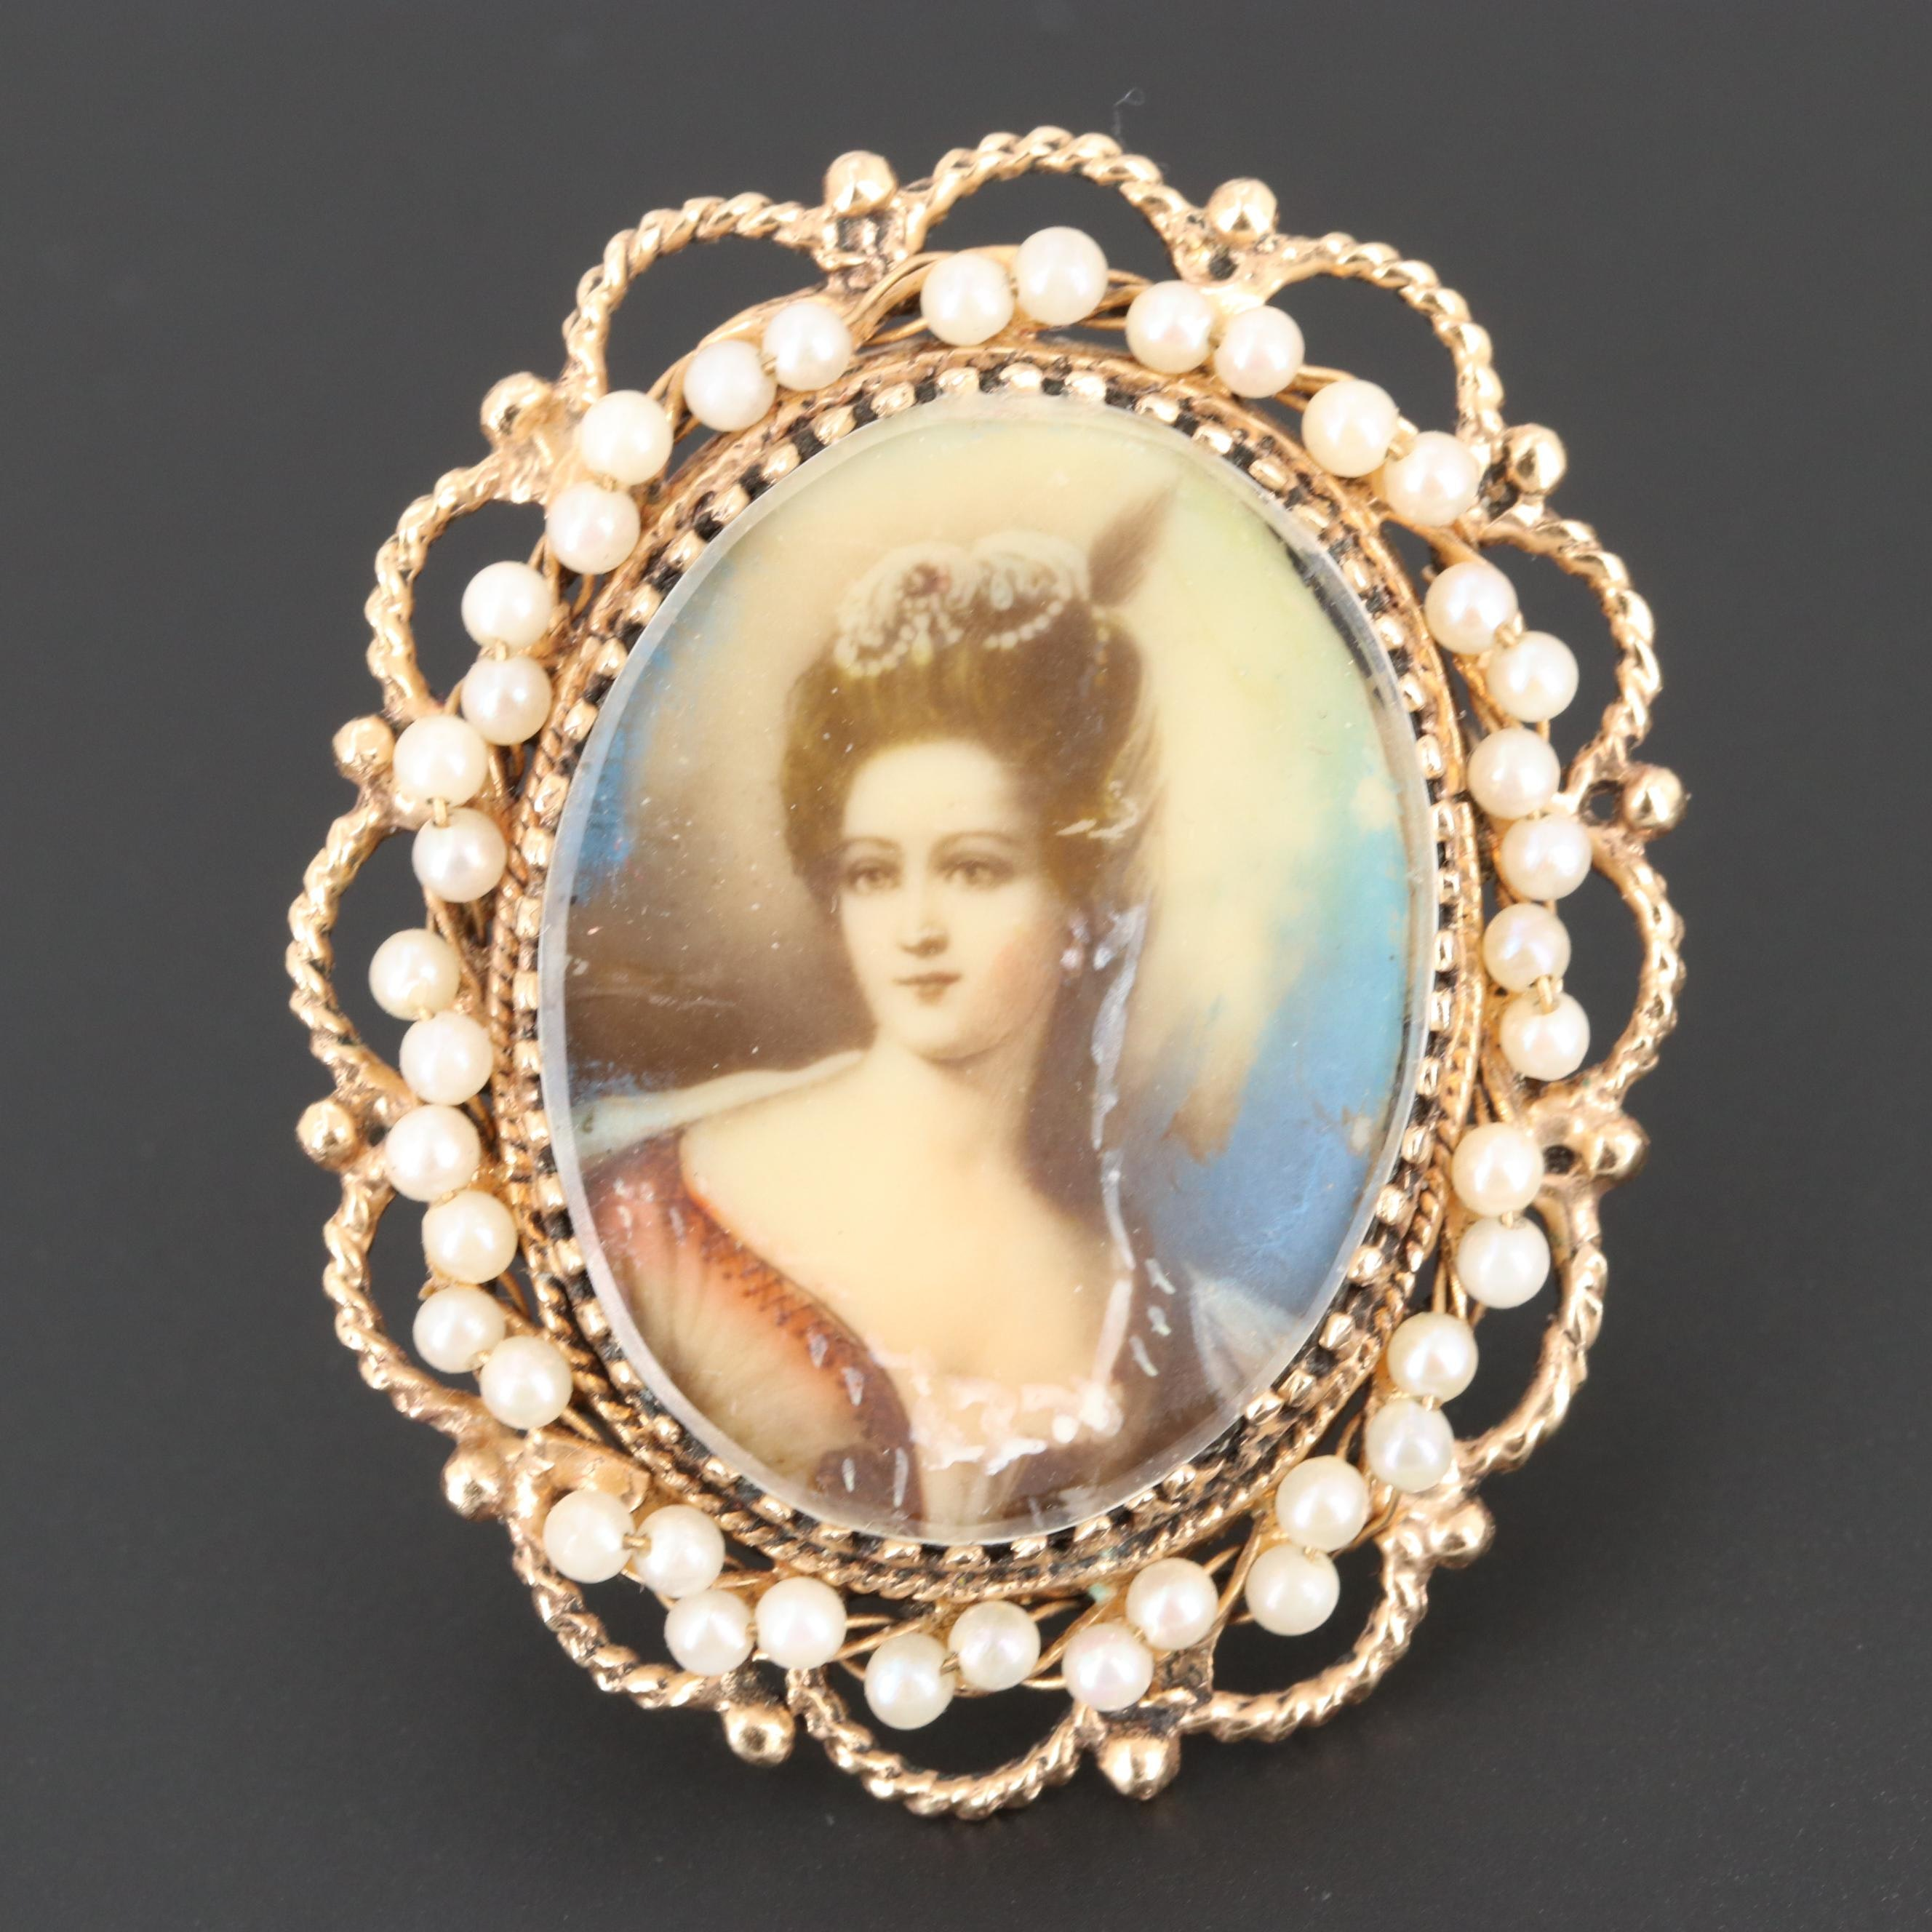 Vintage 14K Gold Celluloid, Acrylic and Seed Pearl Portrait Converter Brooch